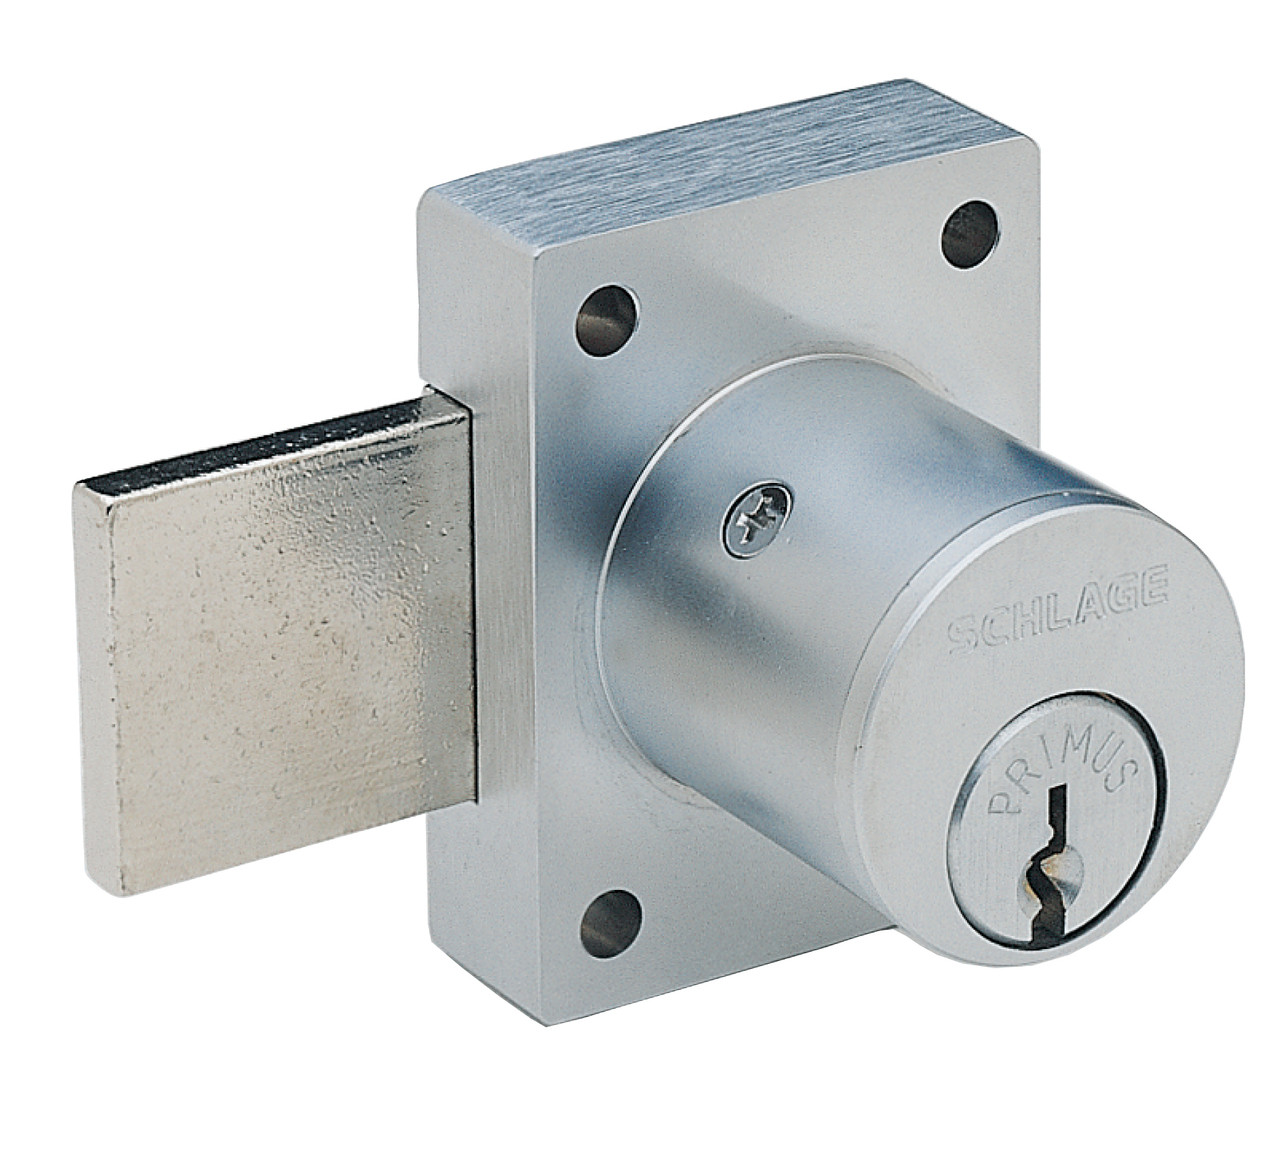 Schlage Cl Series Portable Locks Heavy Duty Cabinet Conventional Cylinder Price 99 40